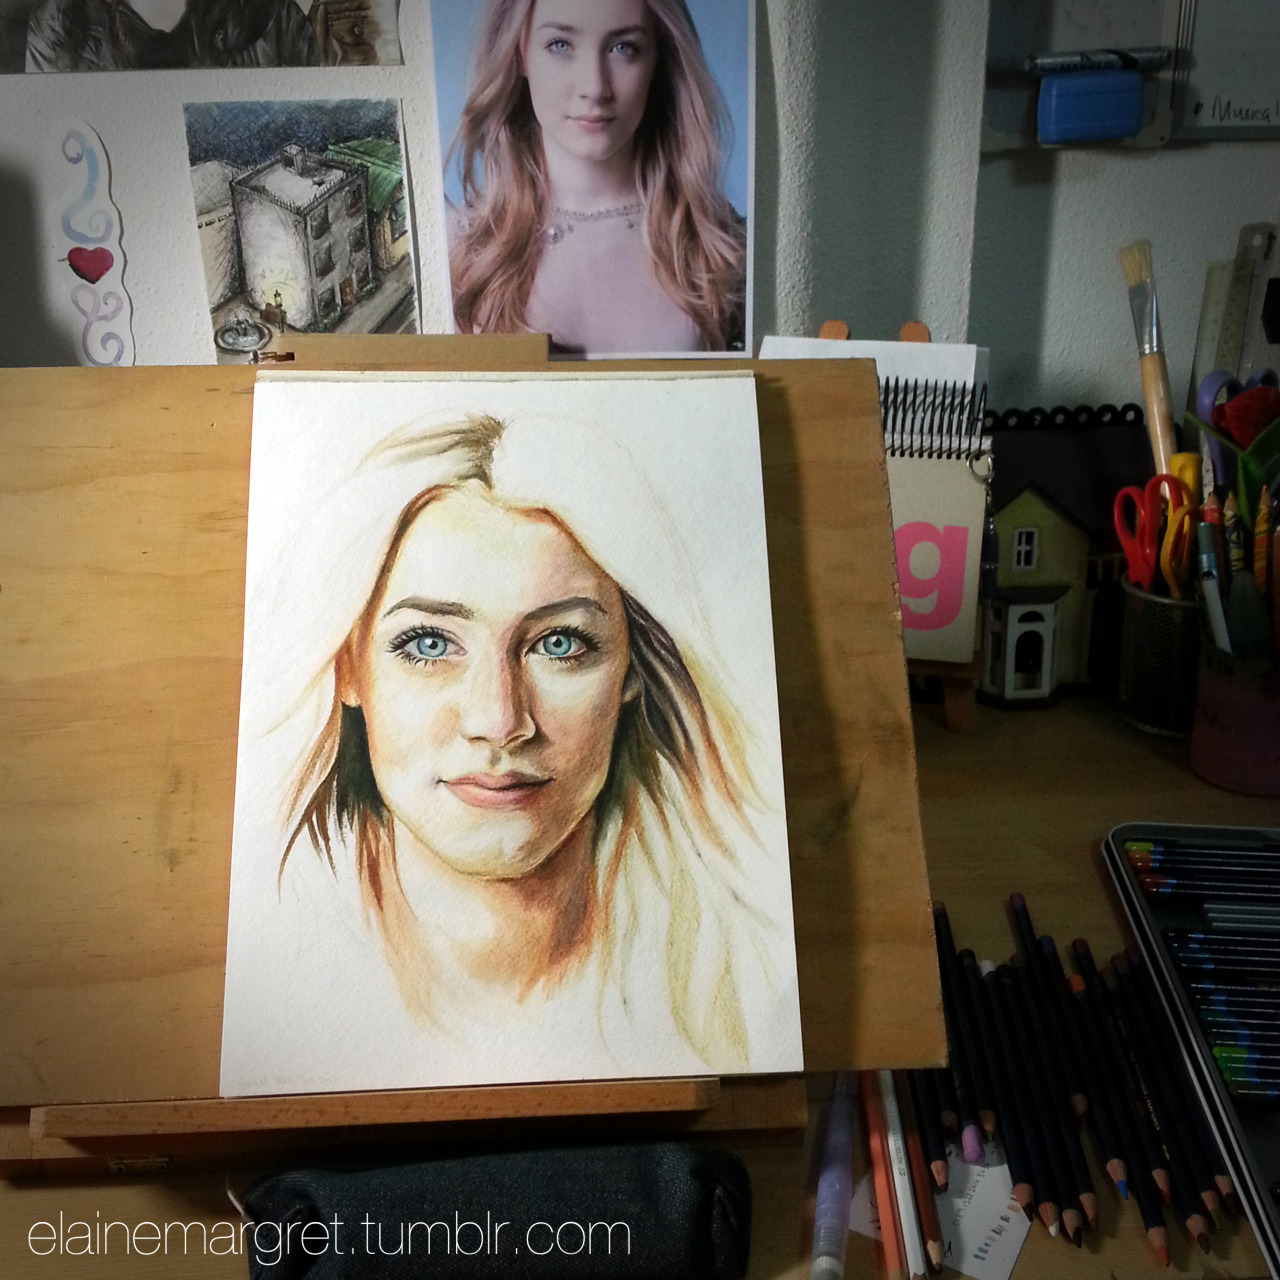 Drawing/painting a portrait of Saoirse Ronan in Derwent Inktense watersoluble ink pencils. Completely freehand from observation - no grids, no tracing, no guidelines. :) Work-In-Progress 22/01/13